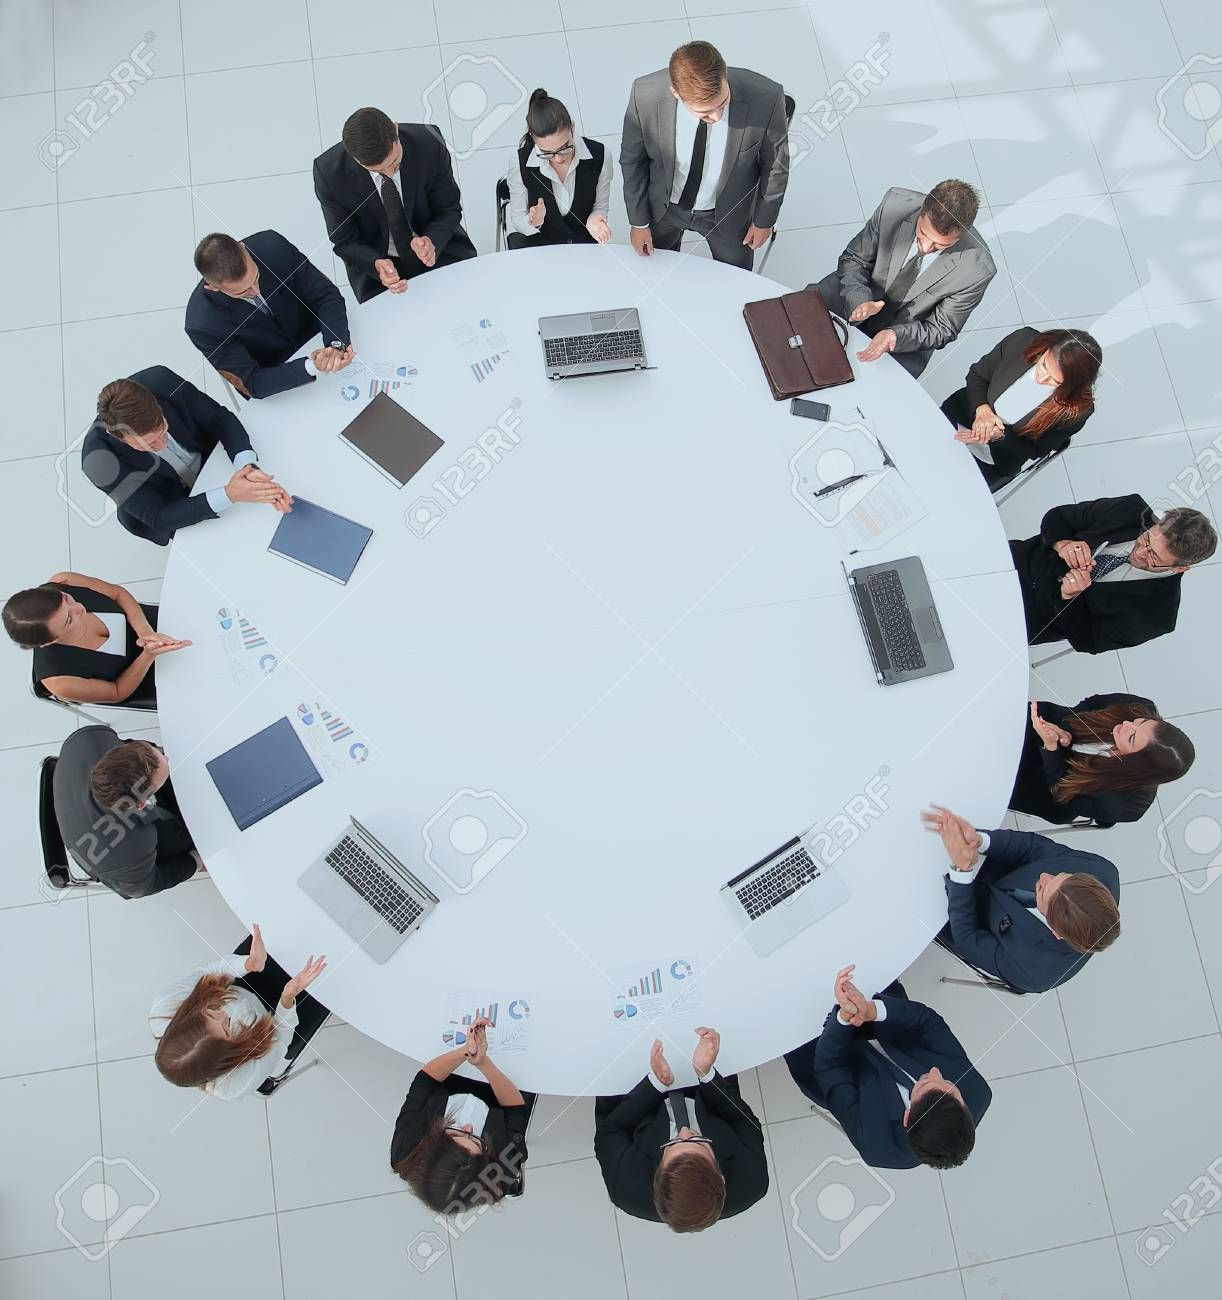 View From The Top Meeting Business Partners For Round Table Stock Photo Sponsored Affiliate Meeting Business View Photo Stock Photos Photo Wall